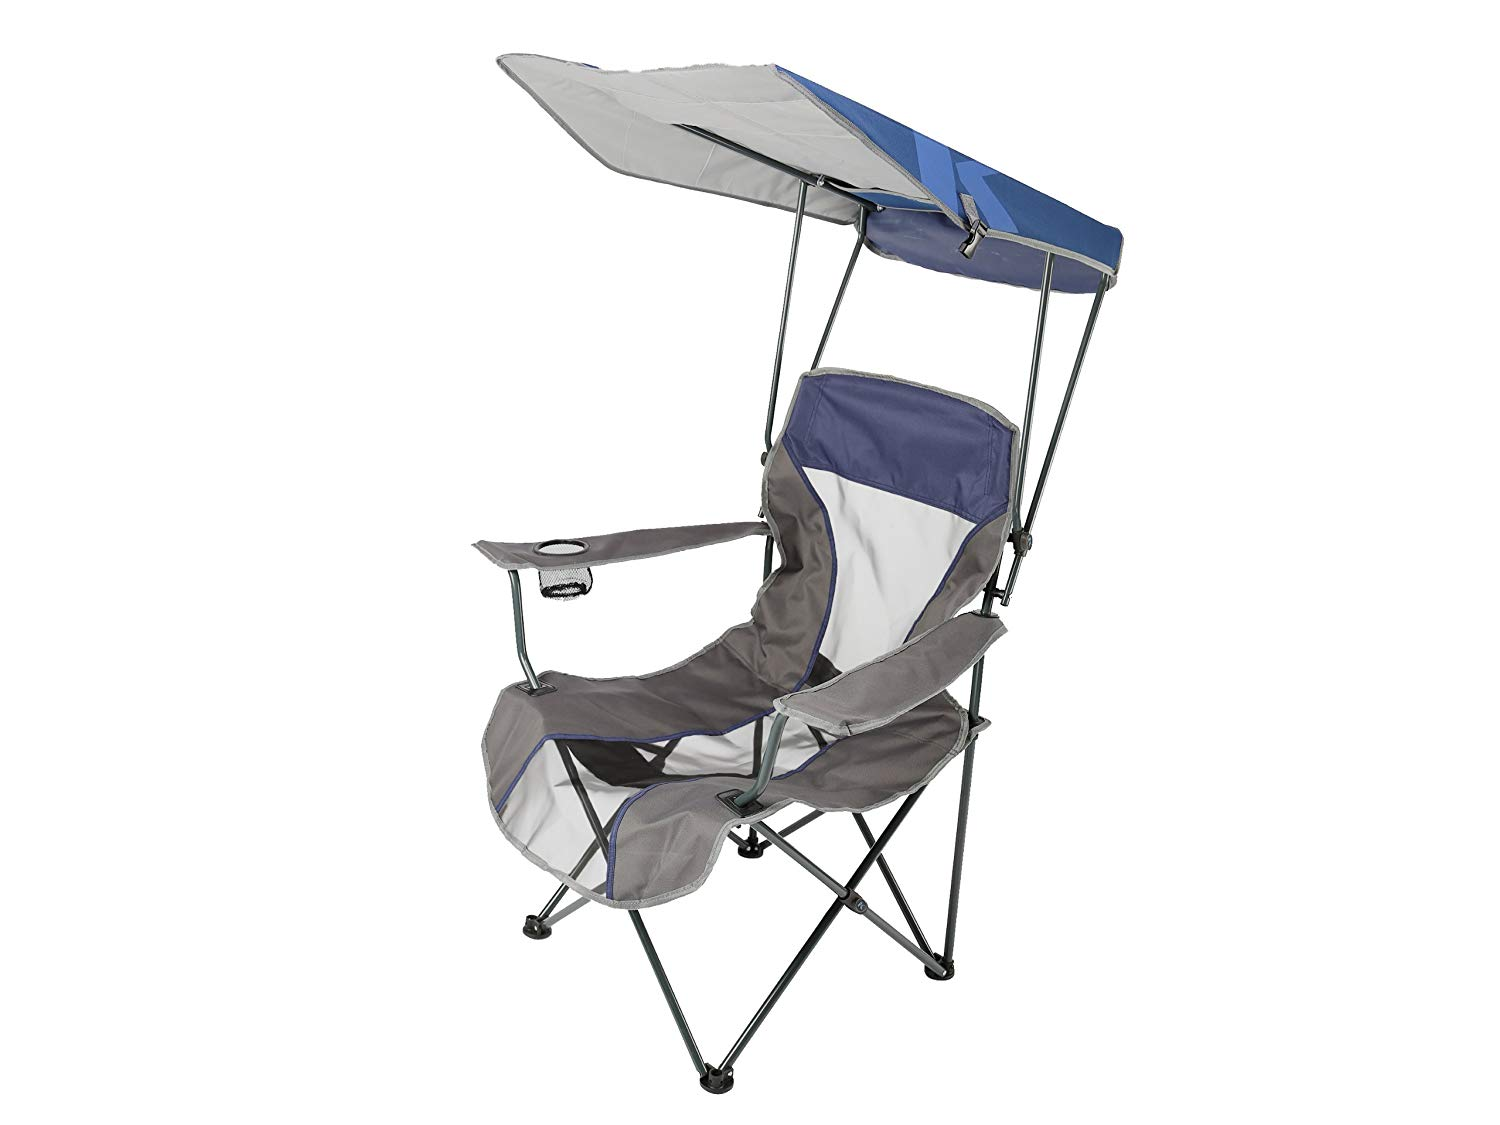 folding chair with canopy amazon.com : kelsyus premium canopy chair : sports u0026 outdoors HRQILMM